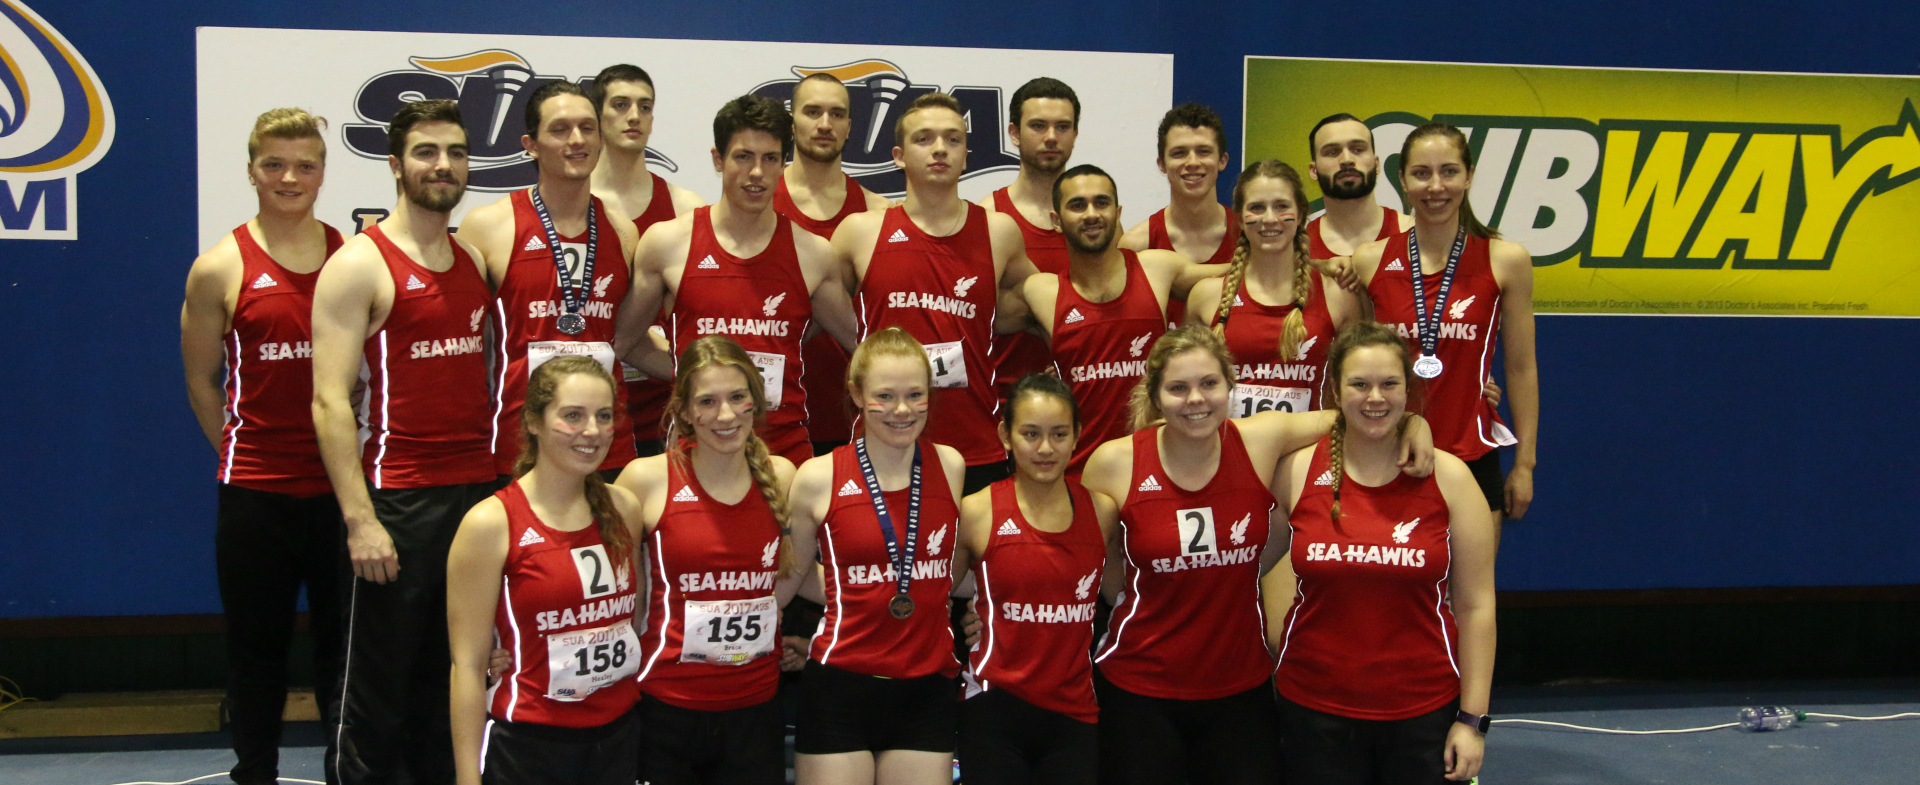 Sea-Hawks With Strong Showing at T&F Championships